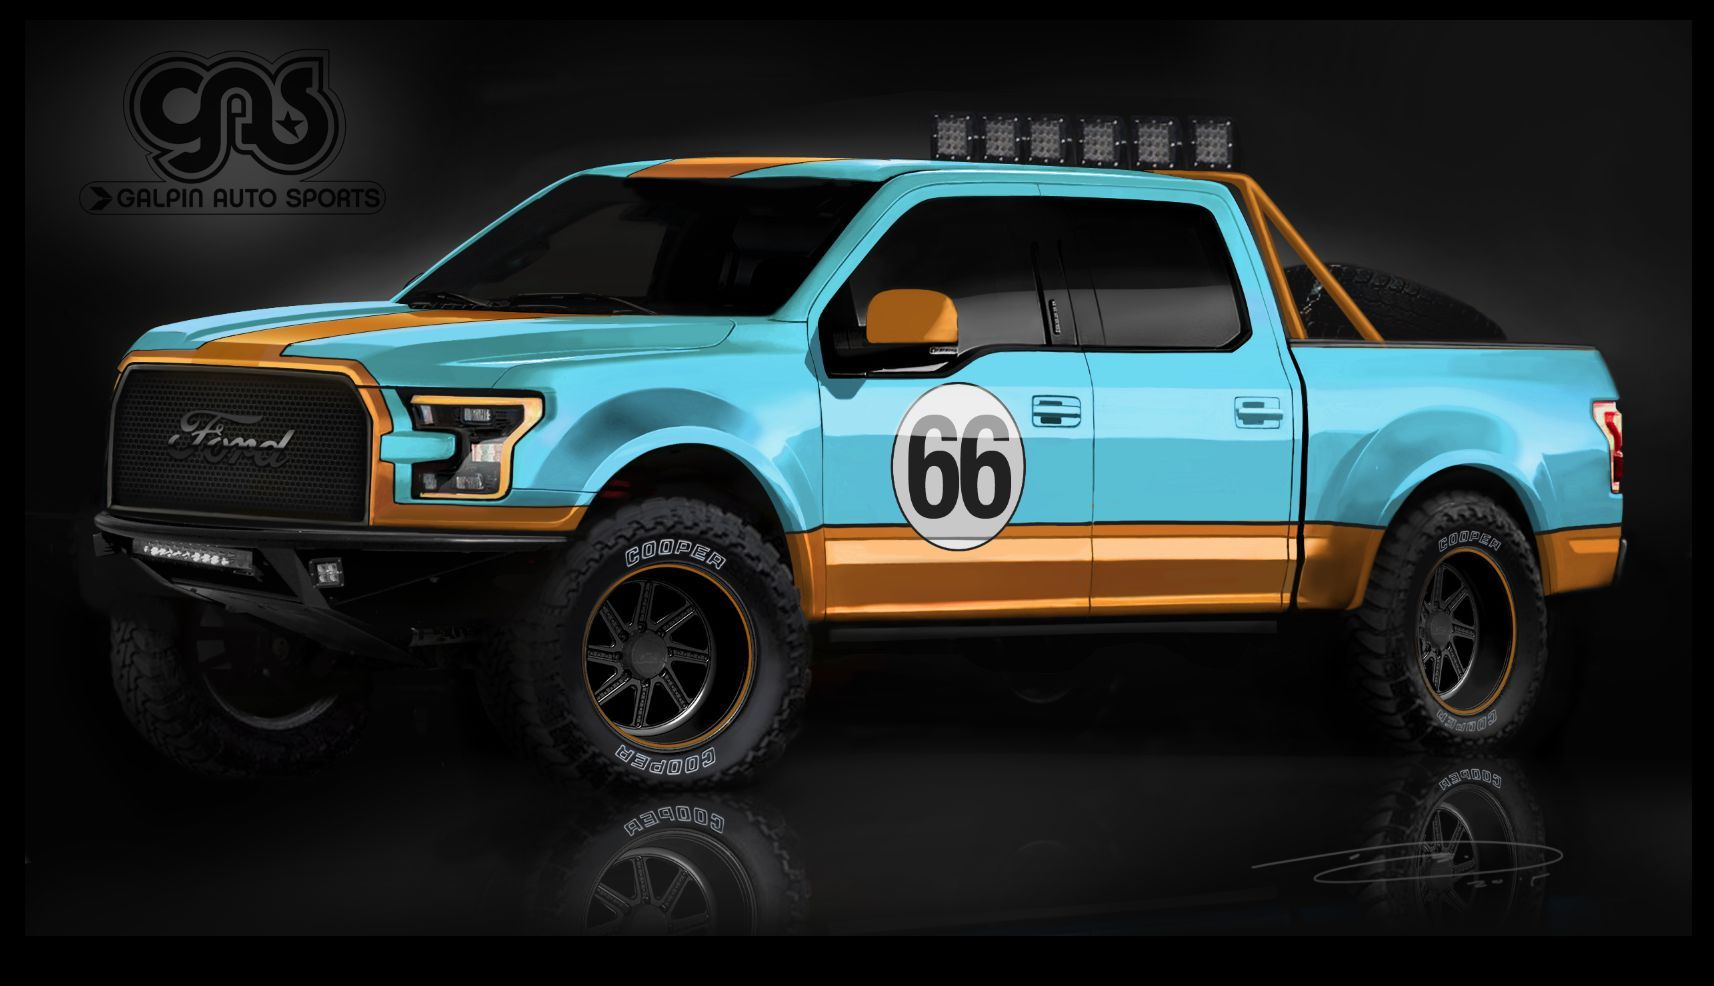 2015 Ford F-150 | 2015 Galpin Auto Sports (GAS) Ford F-150 Render